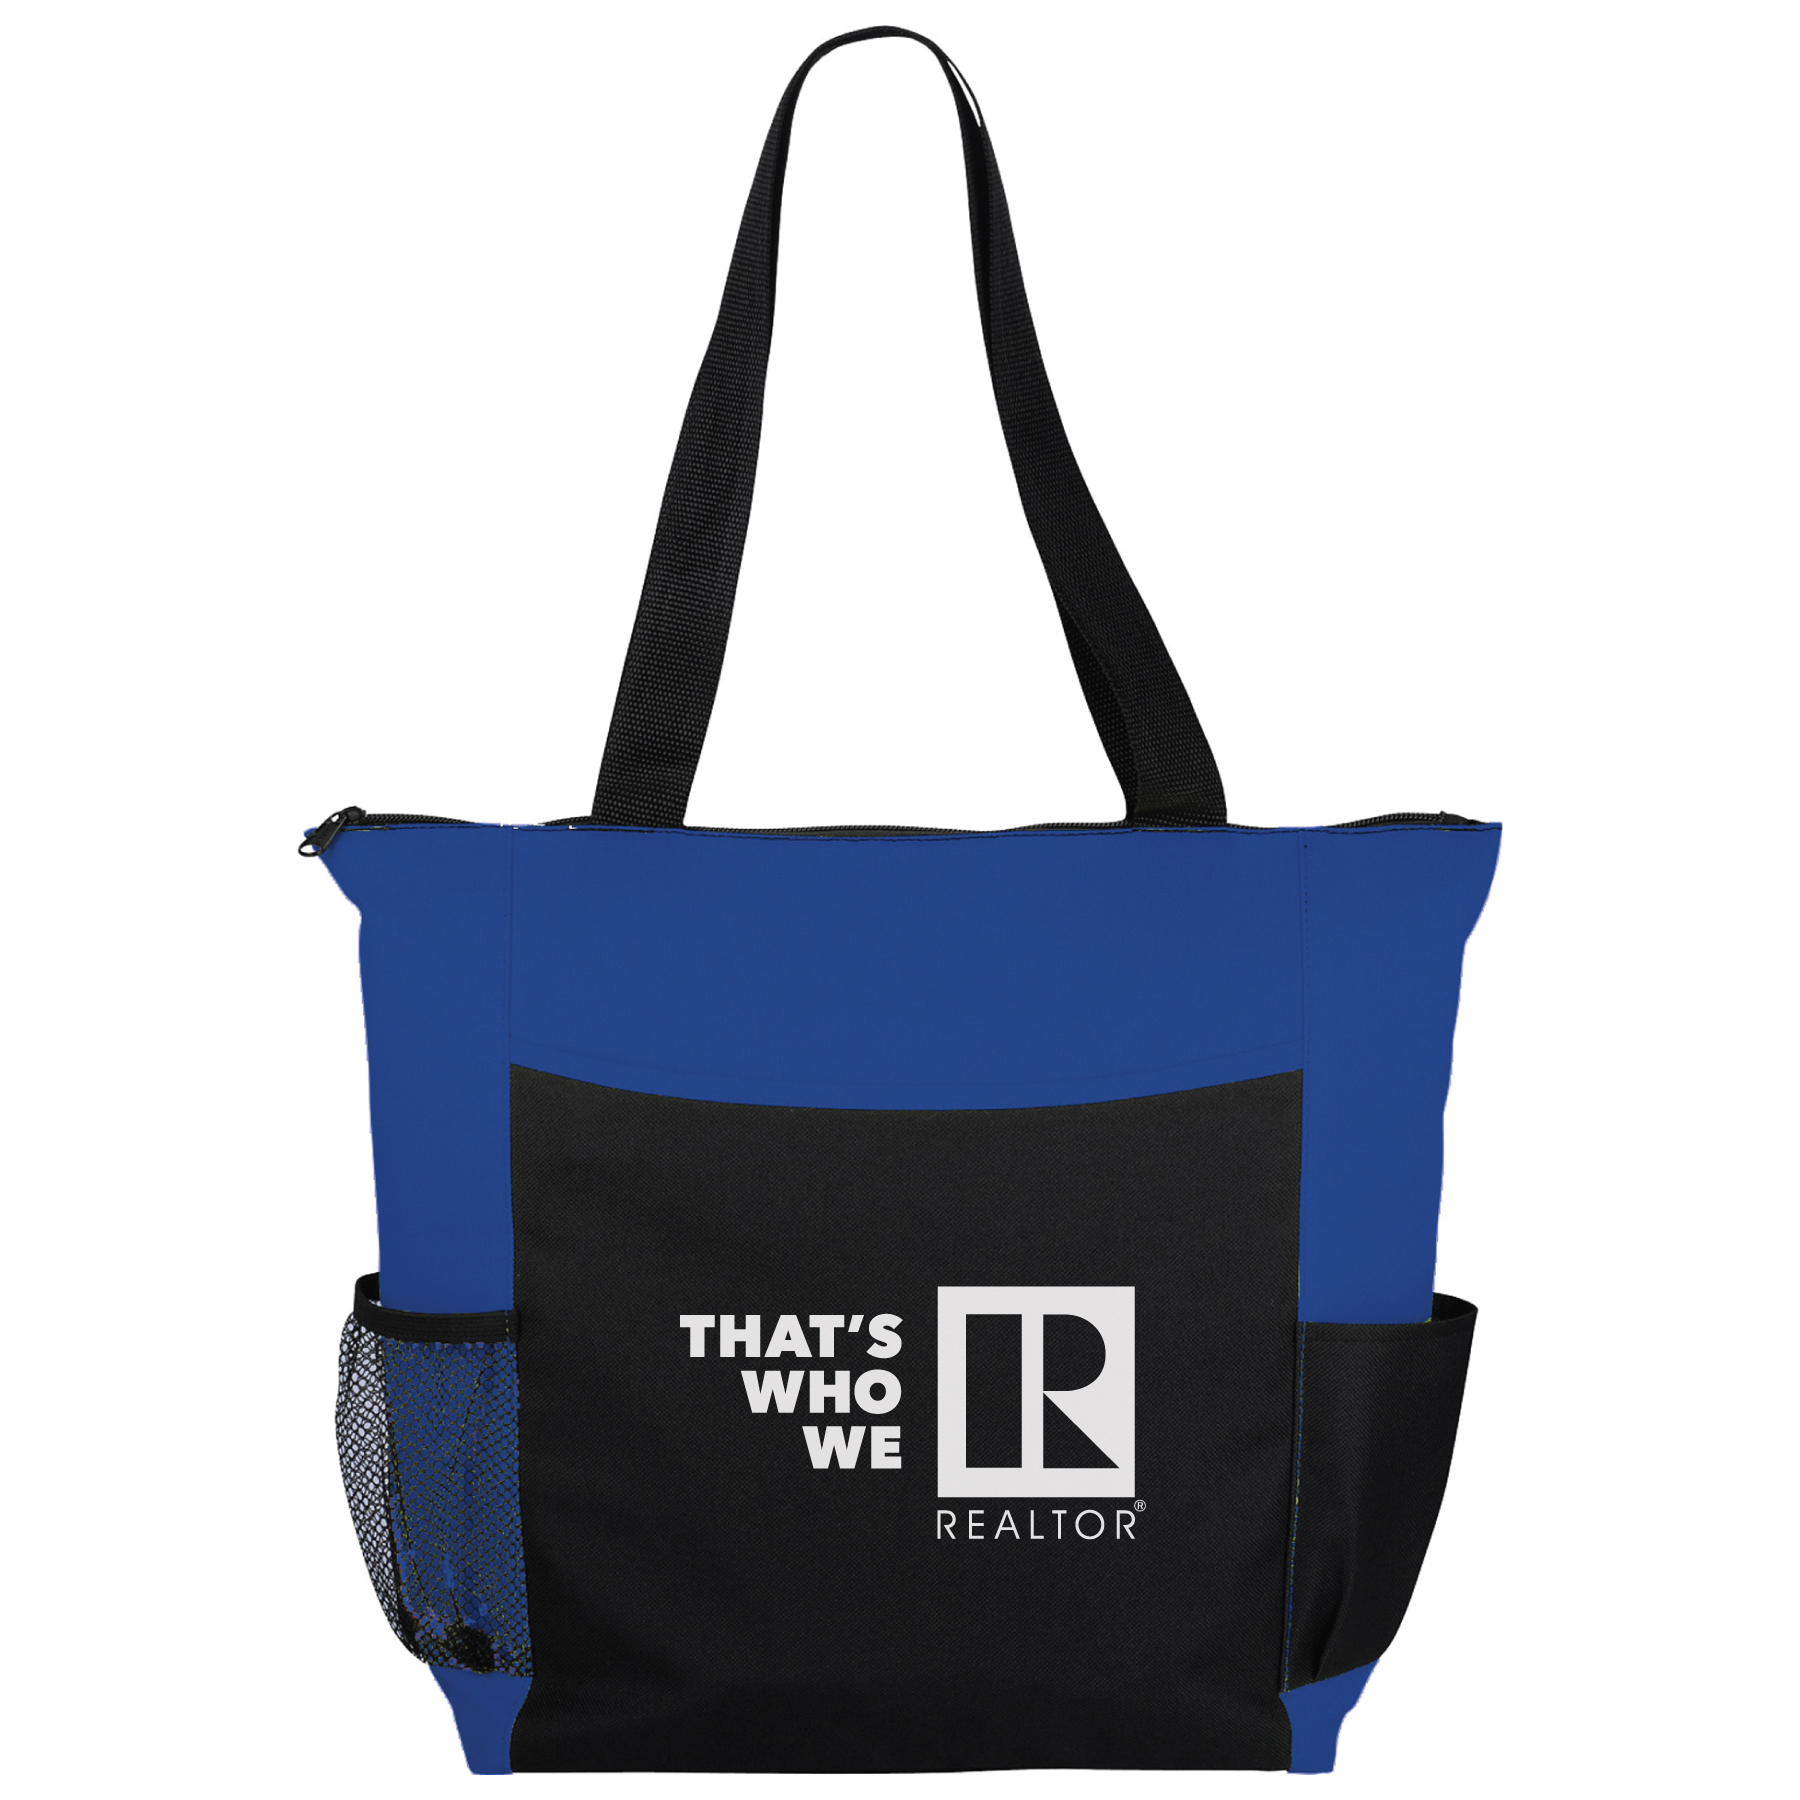 Canvas Bag with Zipper Closure & Bottle Holder twwr,ThatsWhoWeR,That's,TWWR,ThatWho,That'sWho,Twwr,Thats,Whos,We,Ares,RTS4002,Totes,Bags,Straps,Satchels,Slings,